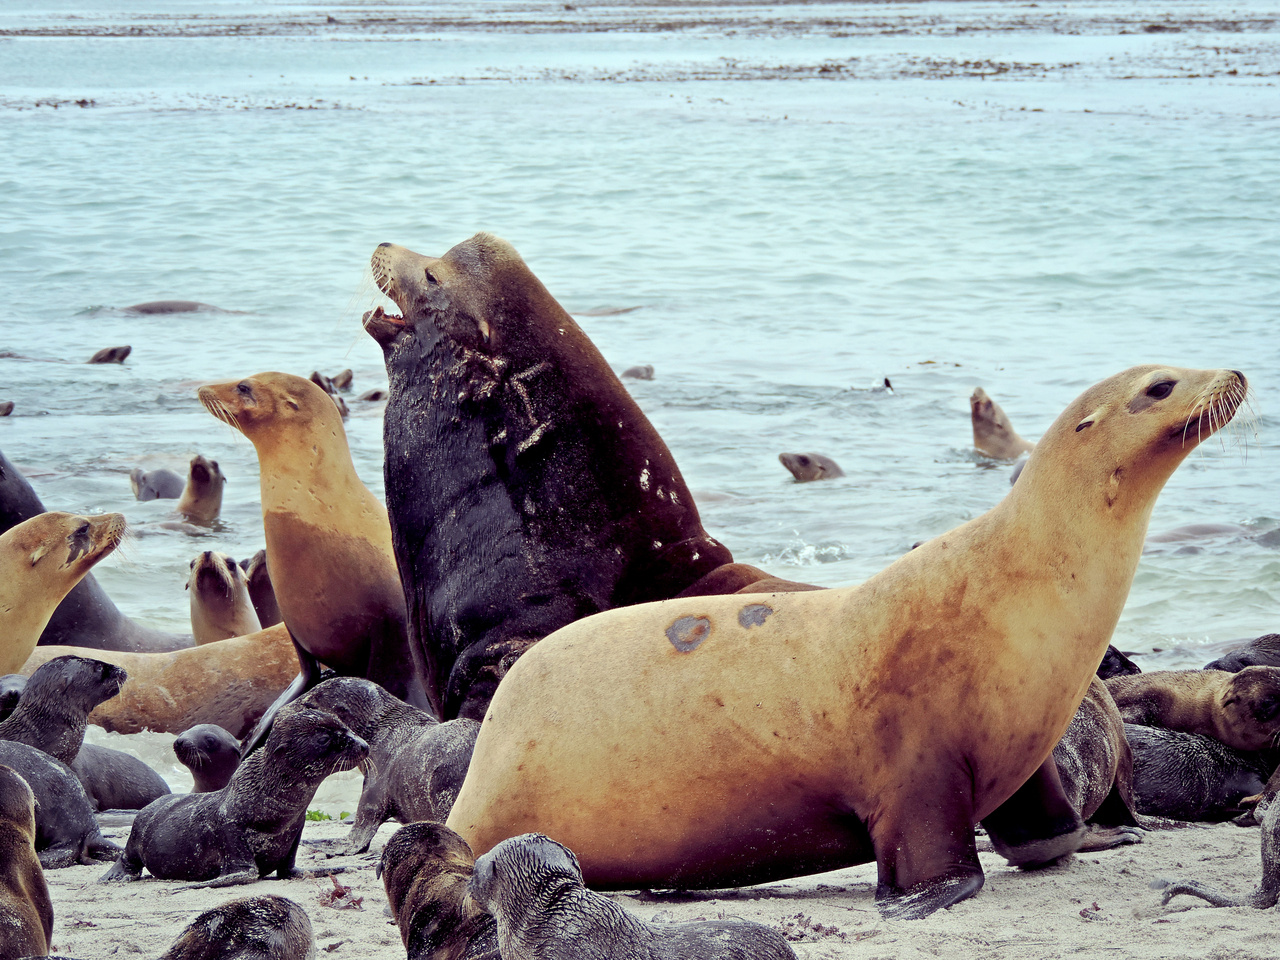 California Sea Lion Rookery, Photo credit: Sharon Melin